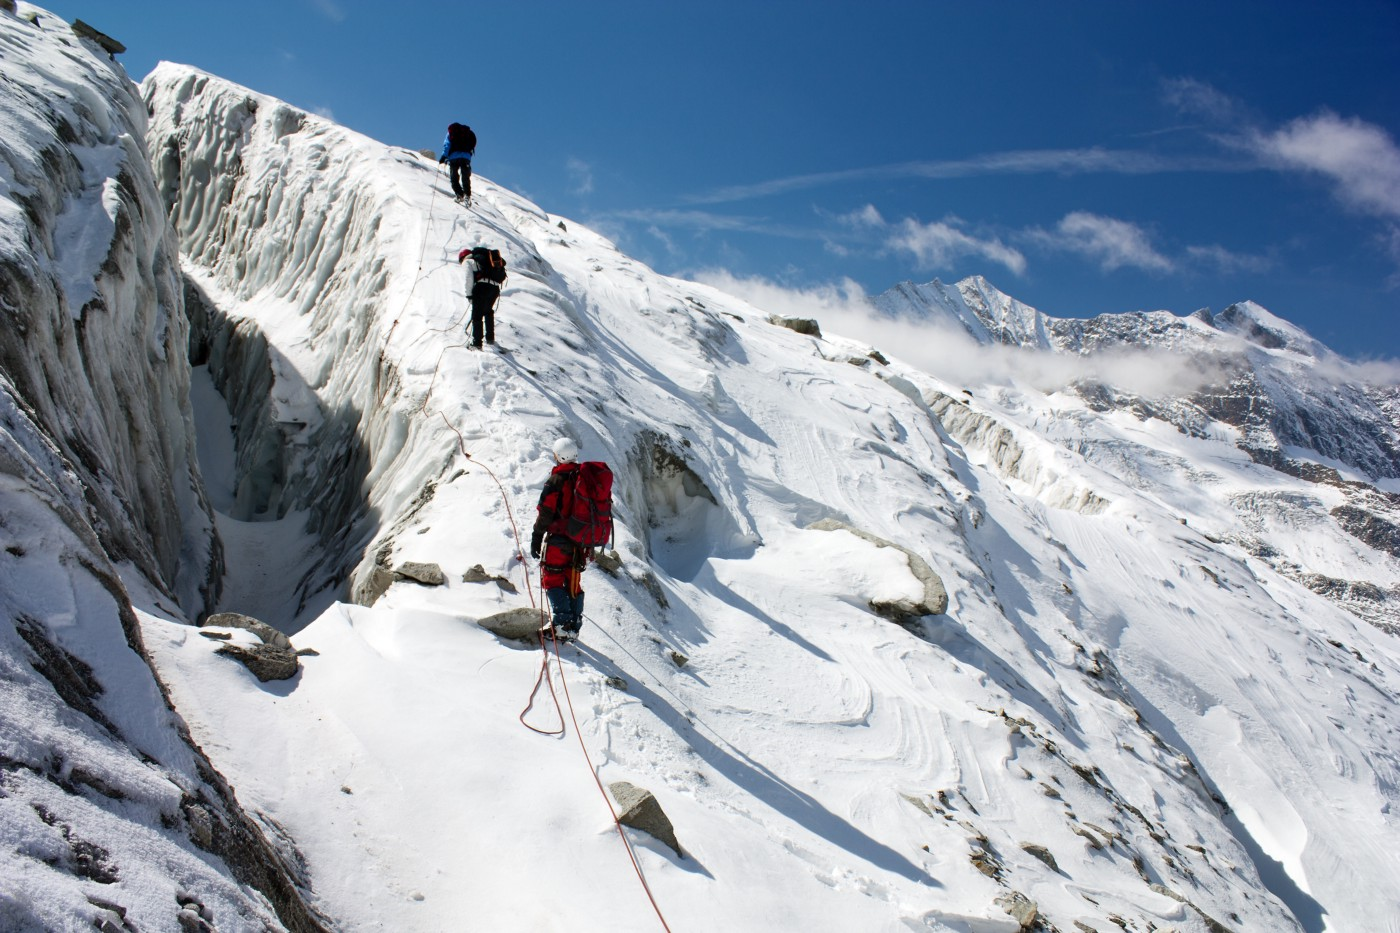 Hikers climbing up snowy mountain